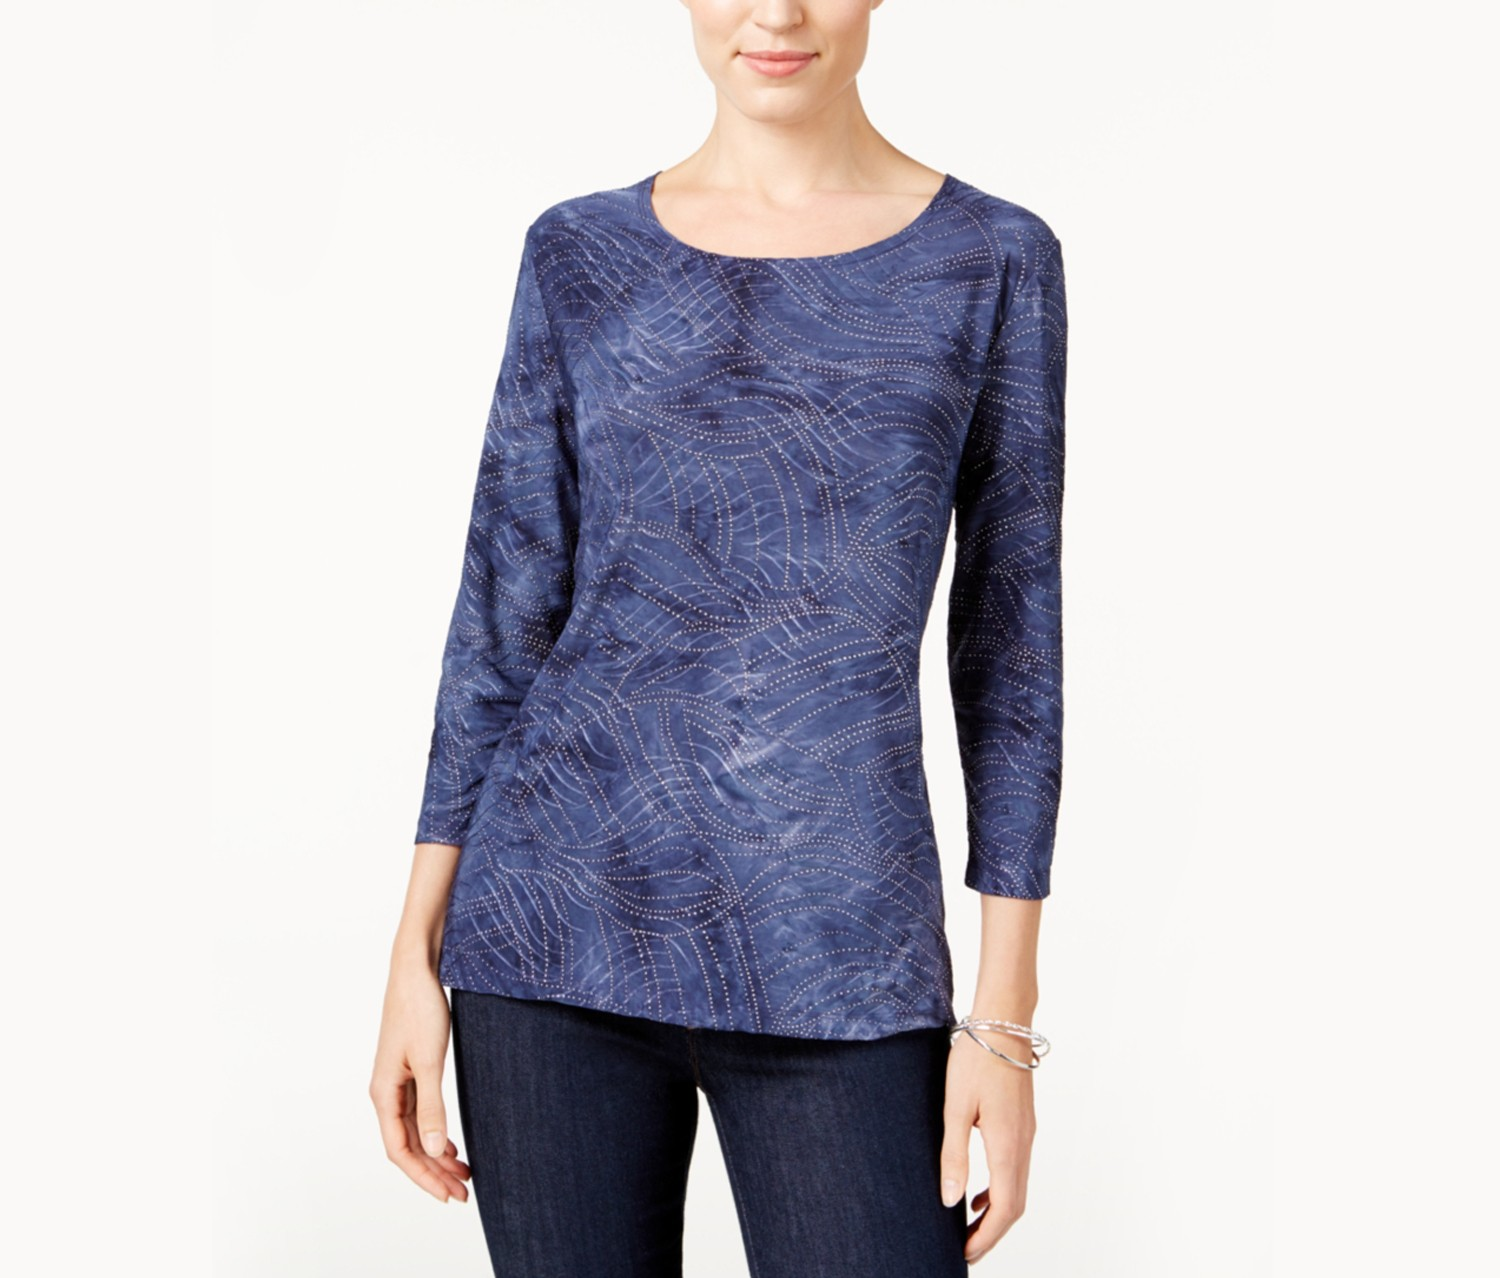 Womens Tie-Dyed Embellished Jacquard Top, Intrepid Blue